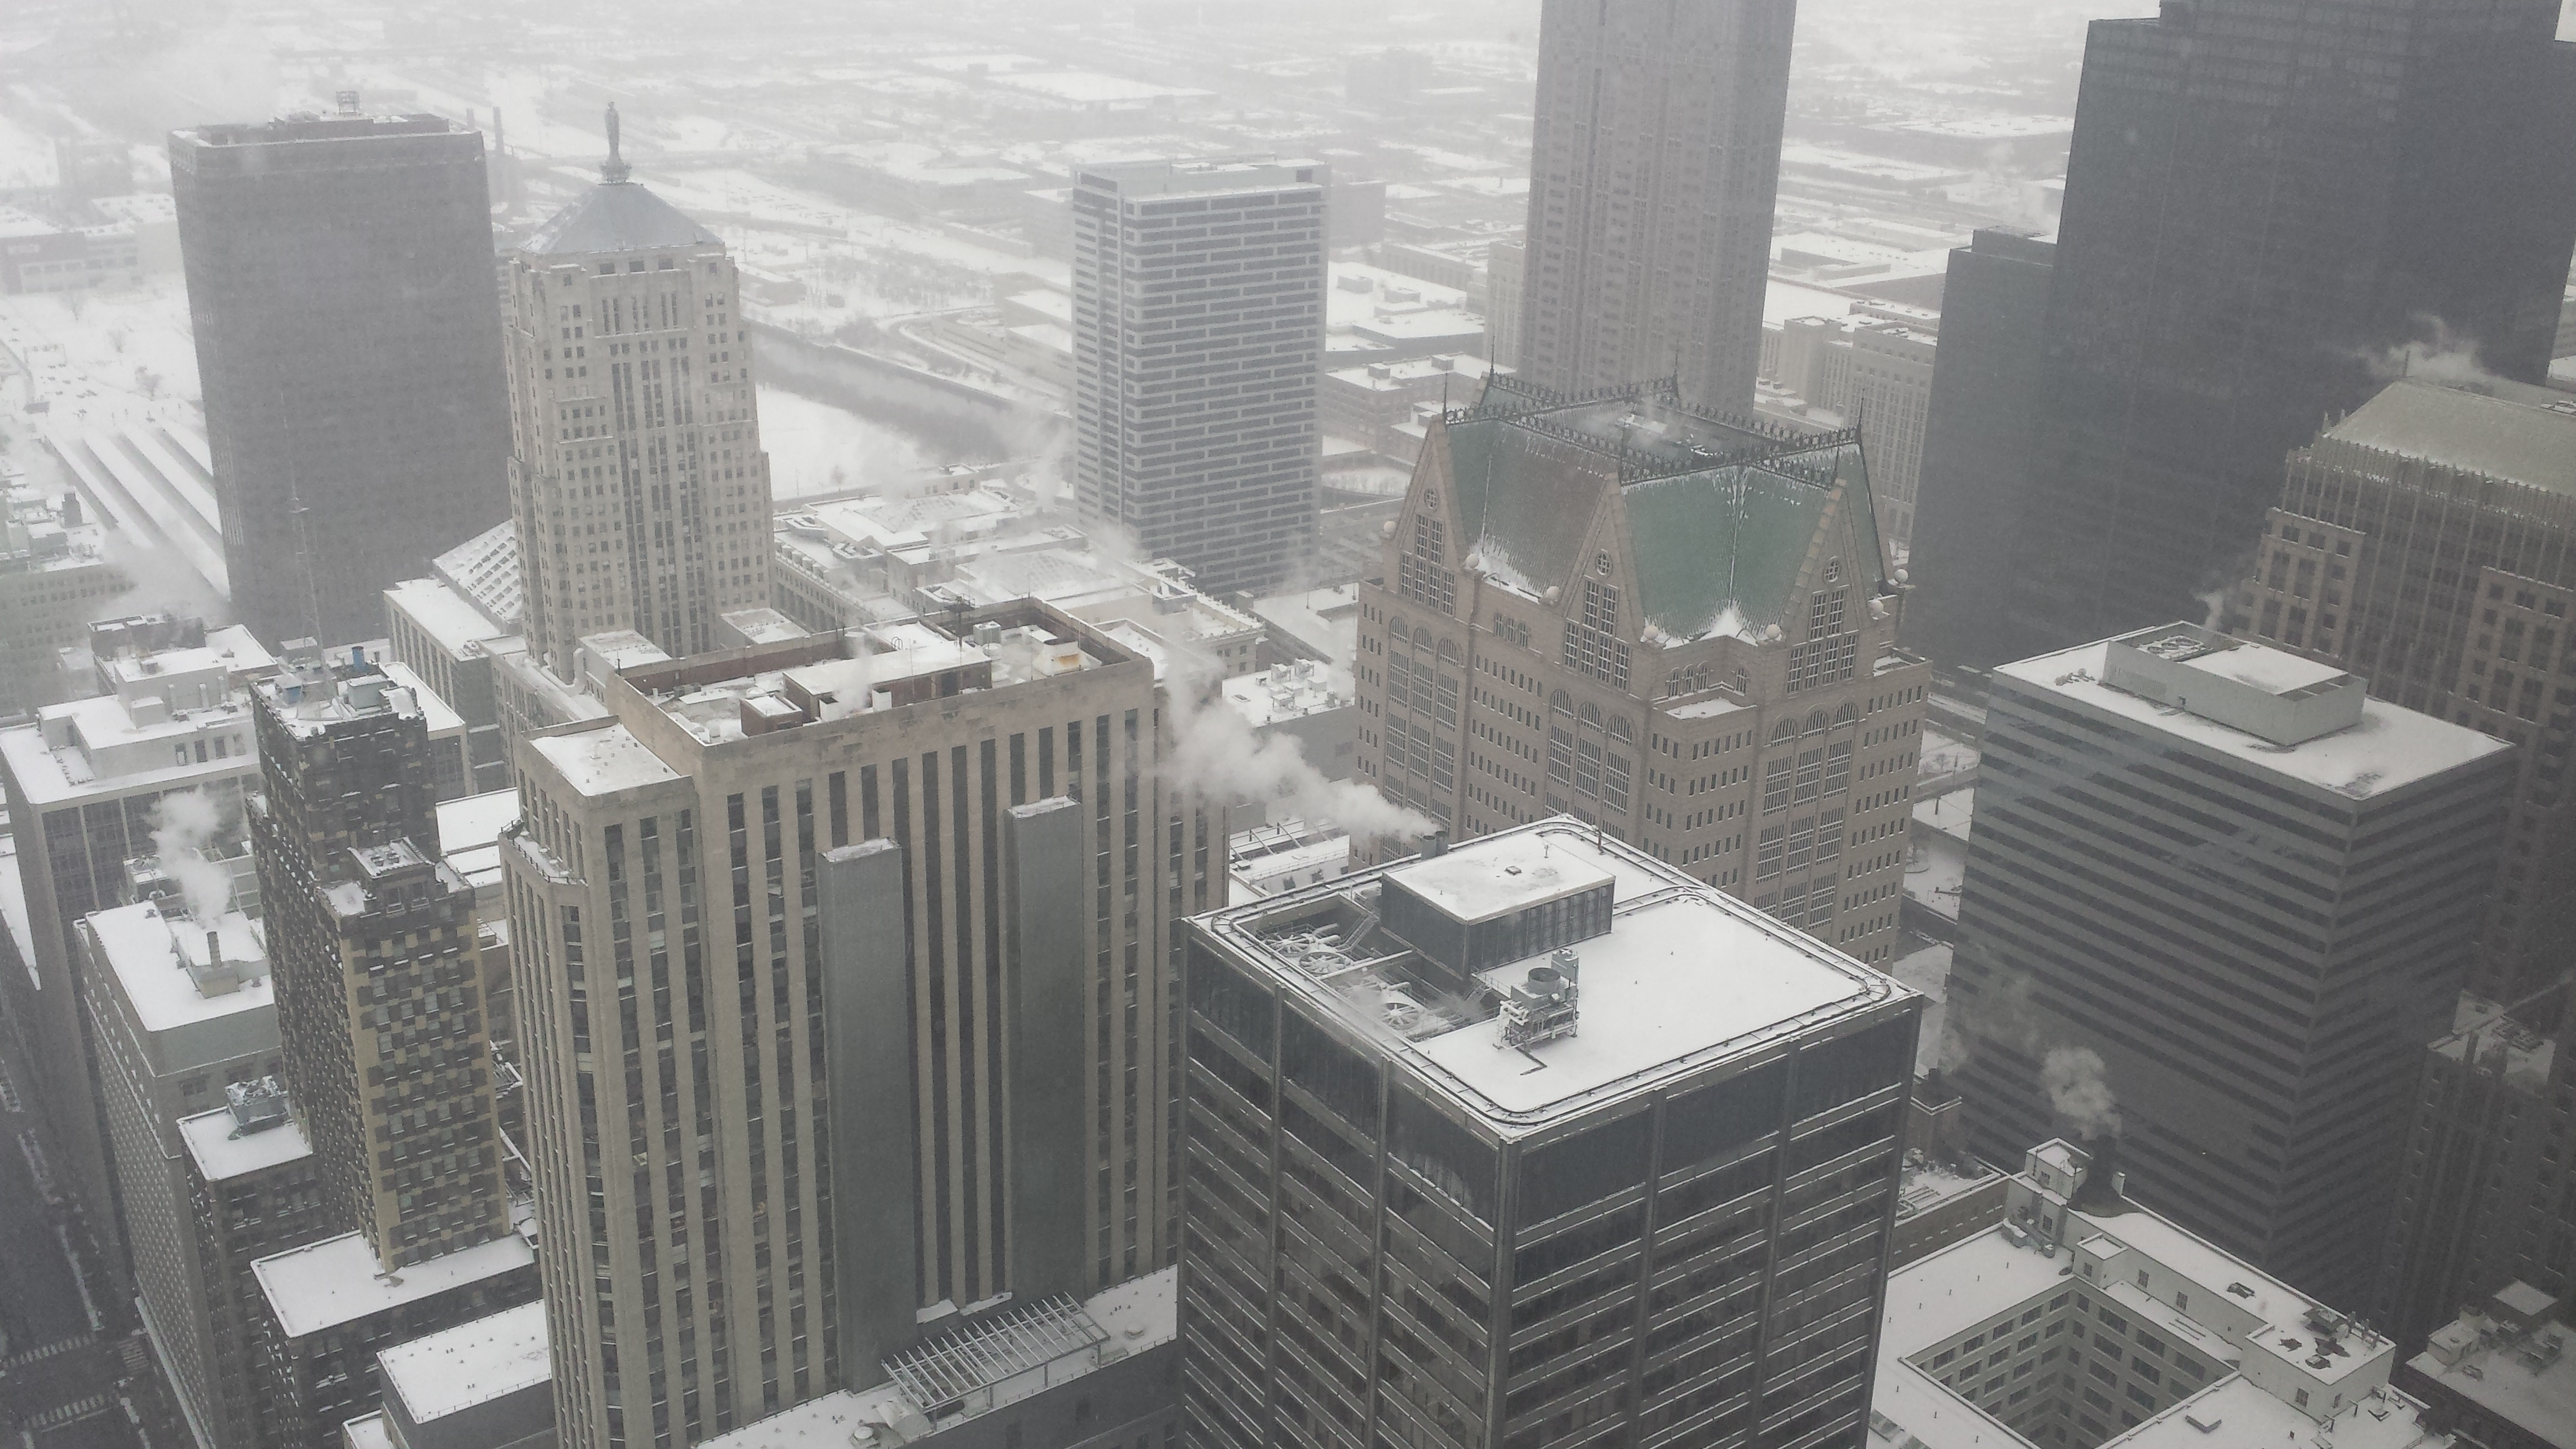 Chicago skyline view in winter from Chase Tower